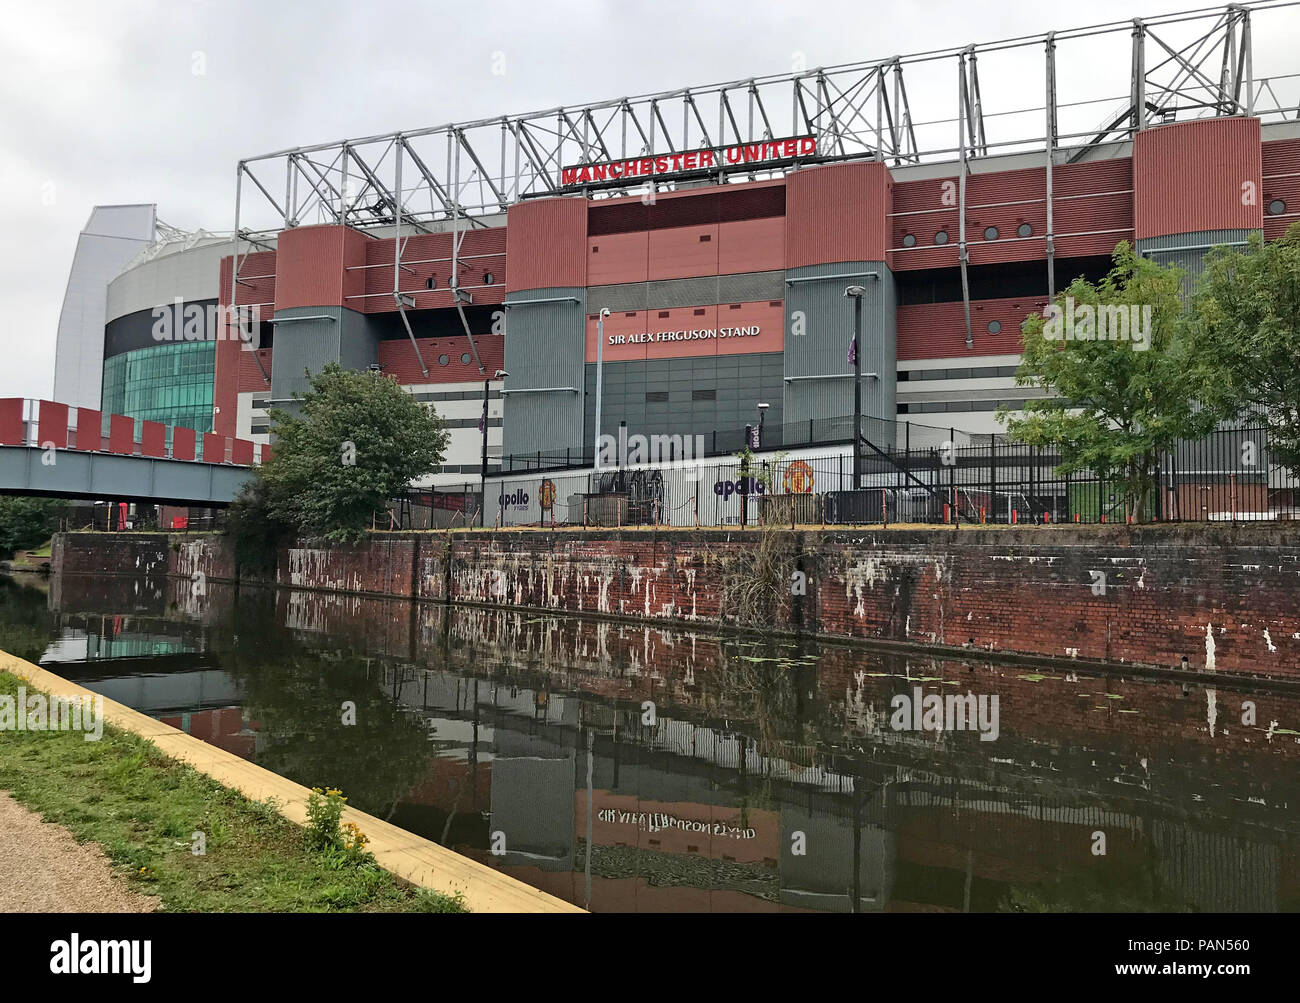 Manchester United Football Club,MUFC, Alex Ferguson stand,from canal, Stretford, Manchester, North west England, UK - Stock Image